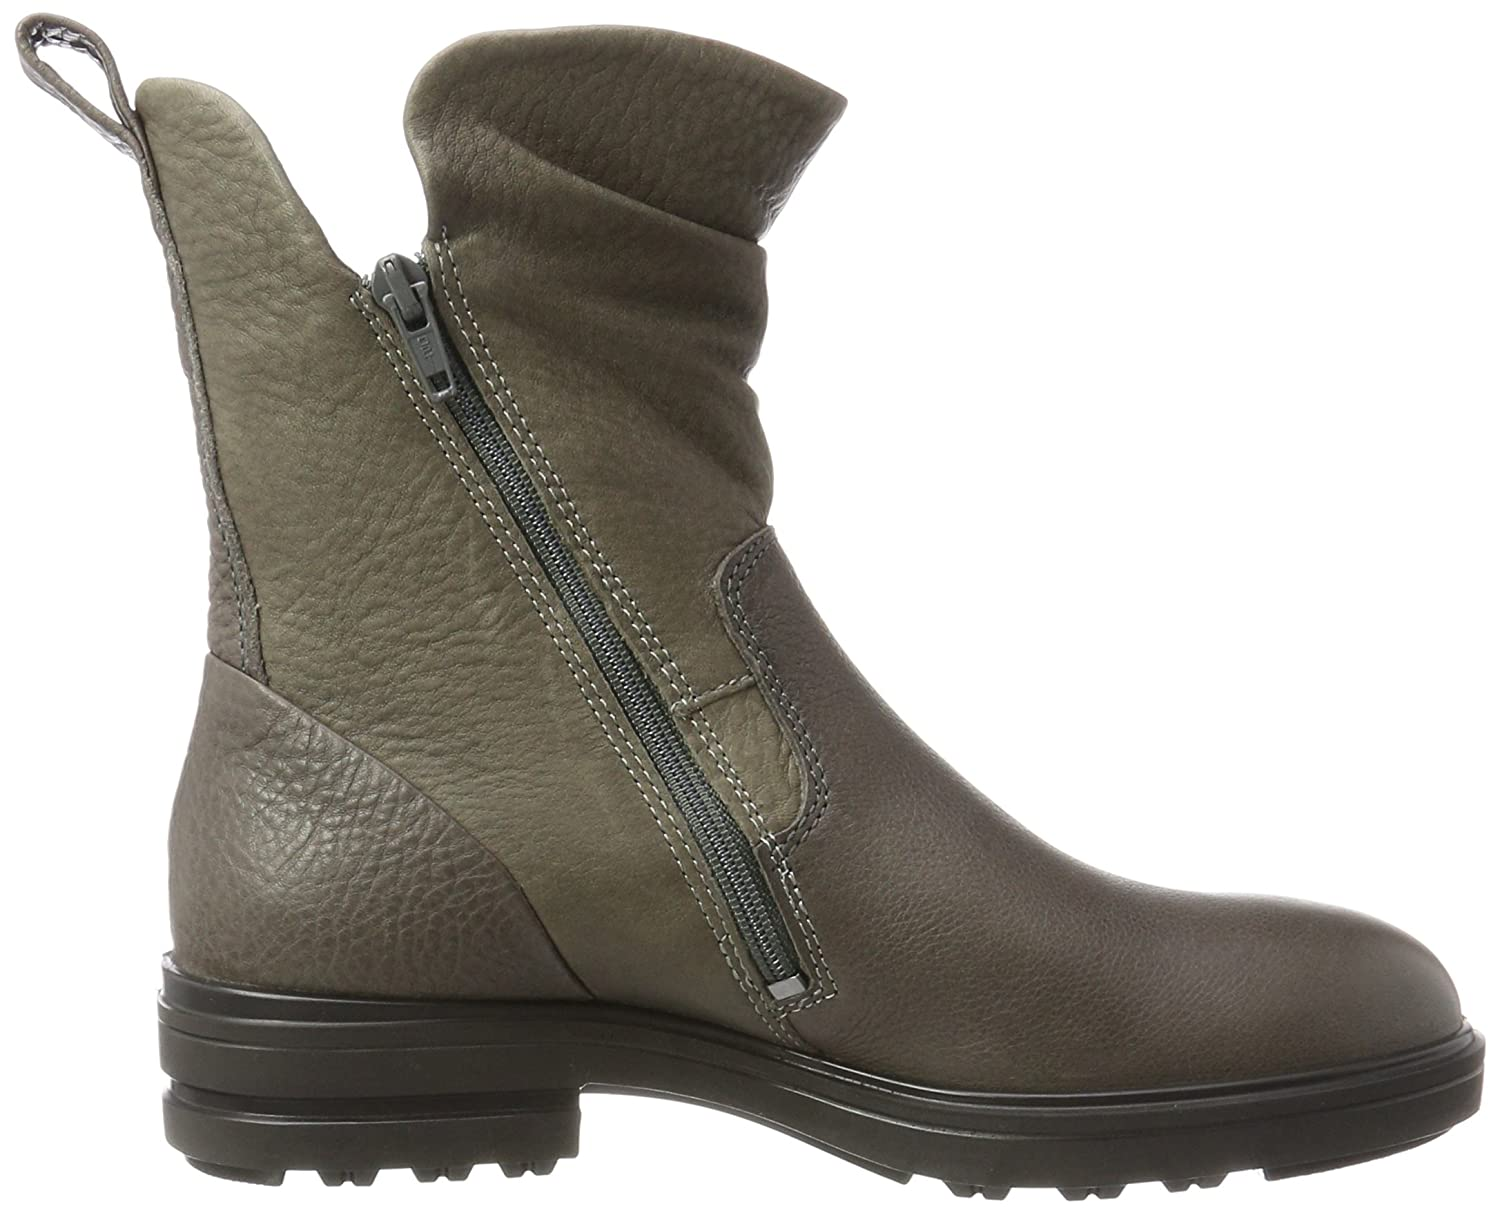 ECCO Women's Women's Zoe Mid Motorcycle Boot B01N7VT1T0 41 EU / 10-10.5 US|Steel/Warm Grey